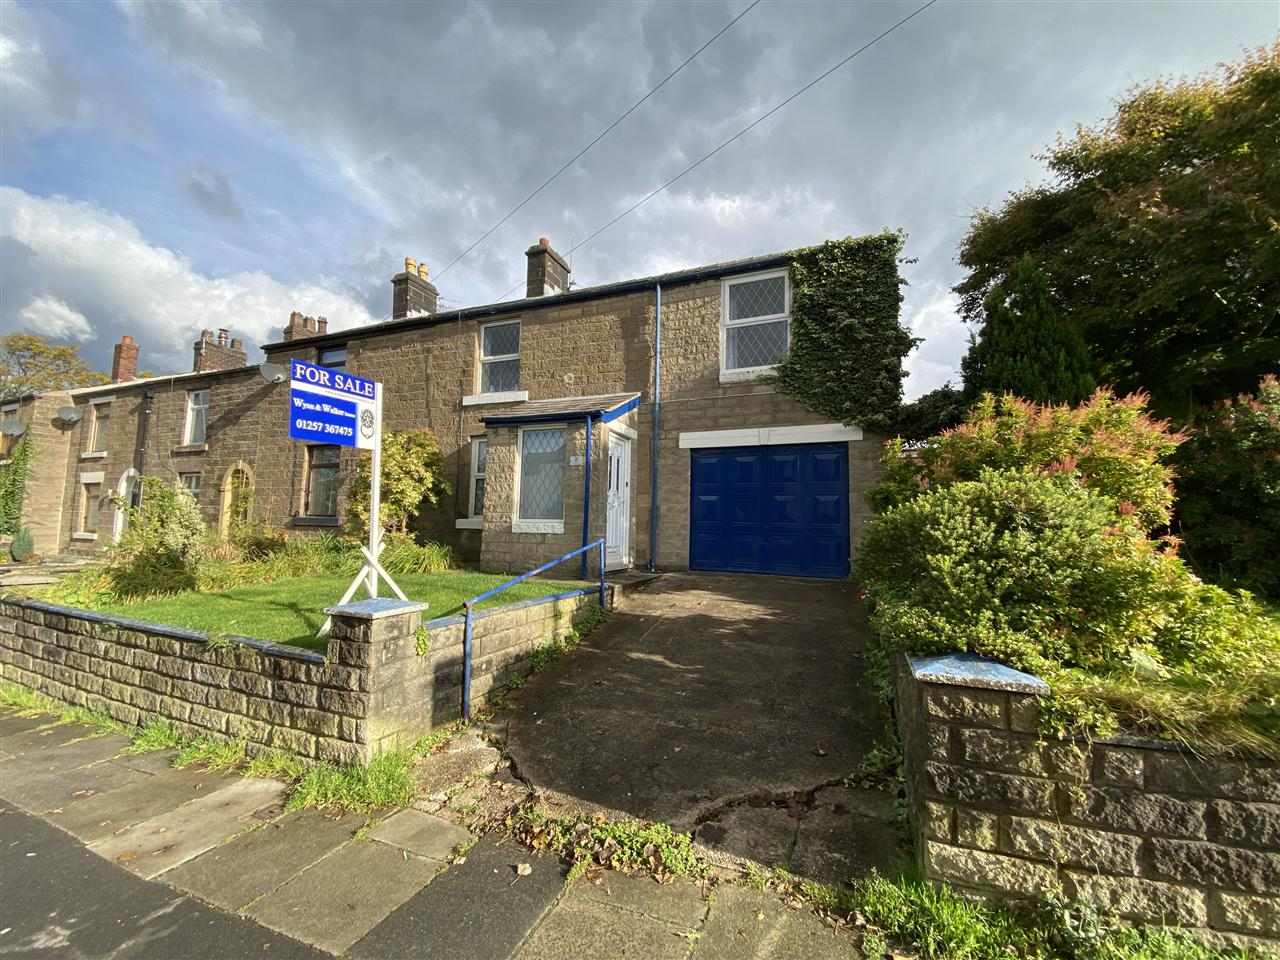 3 bed semi-detached for sale in Chorley Road, Adlington - Property Image 1